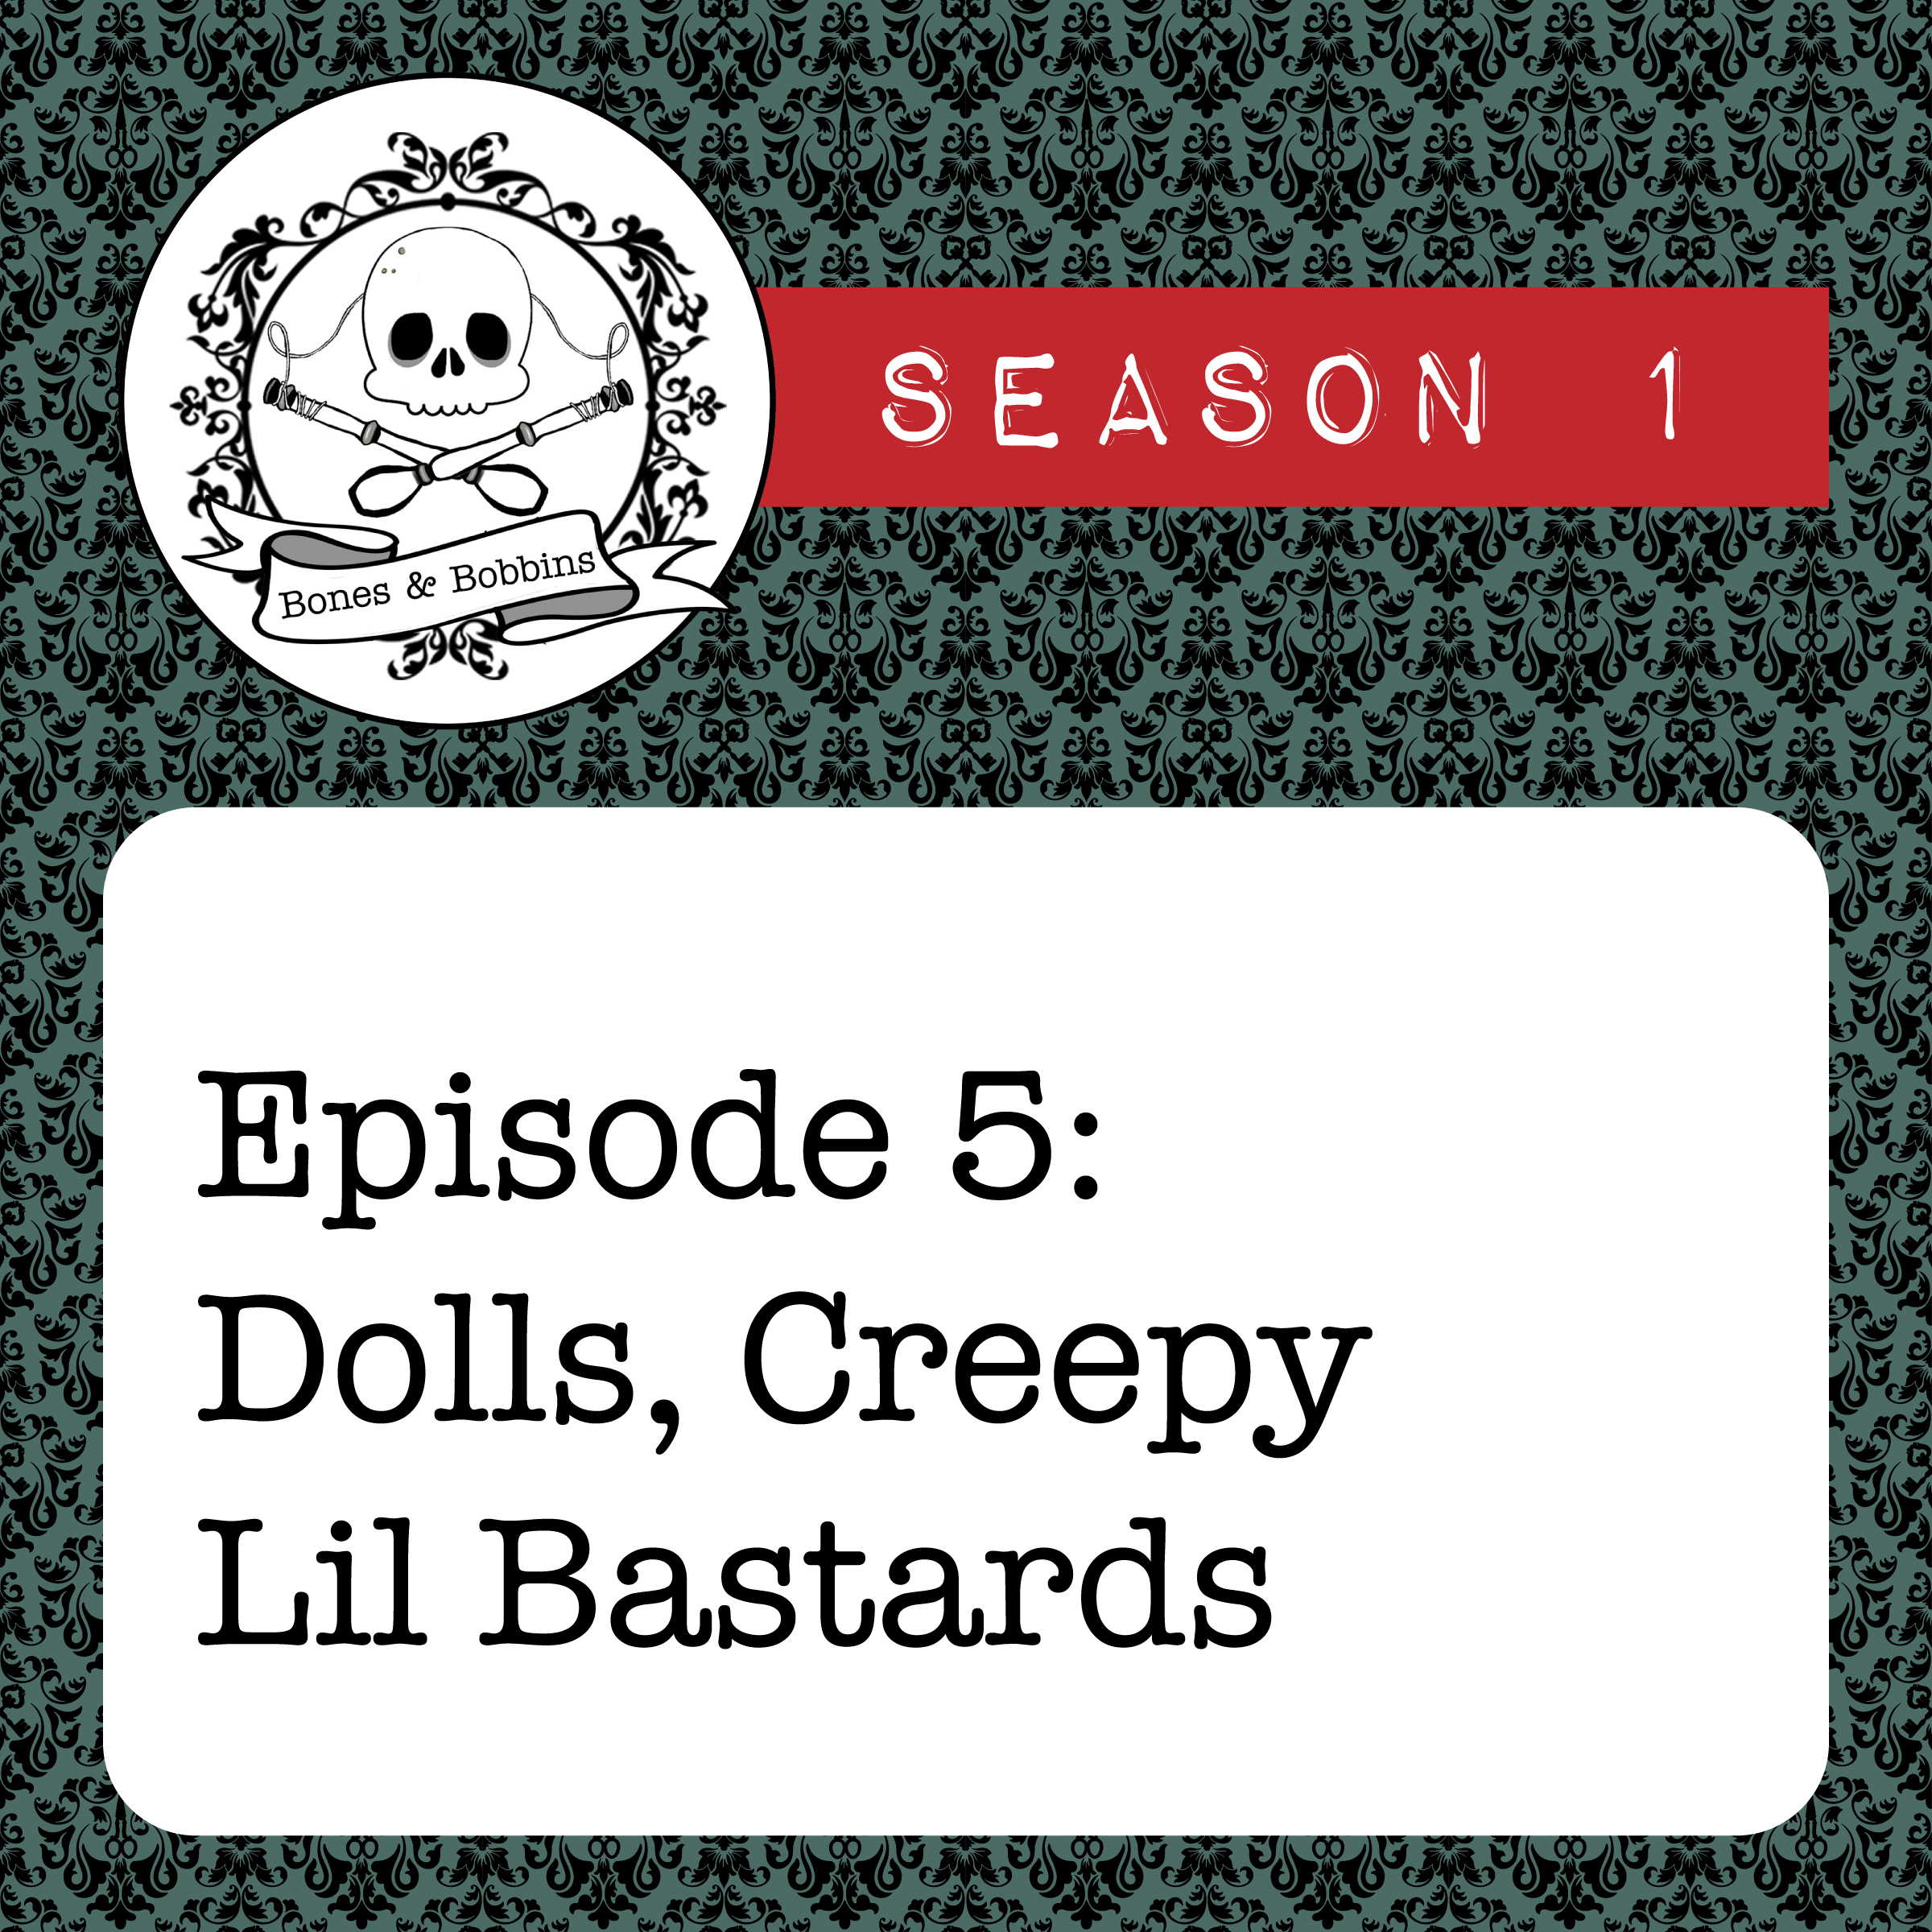 The Bones & Bobbins Podcast, Season 1, Episode 05: Dolls, Creepy Lil Bastards